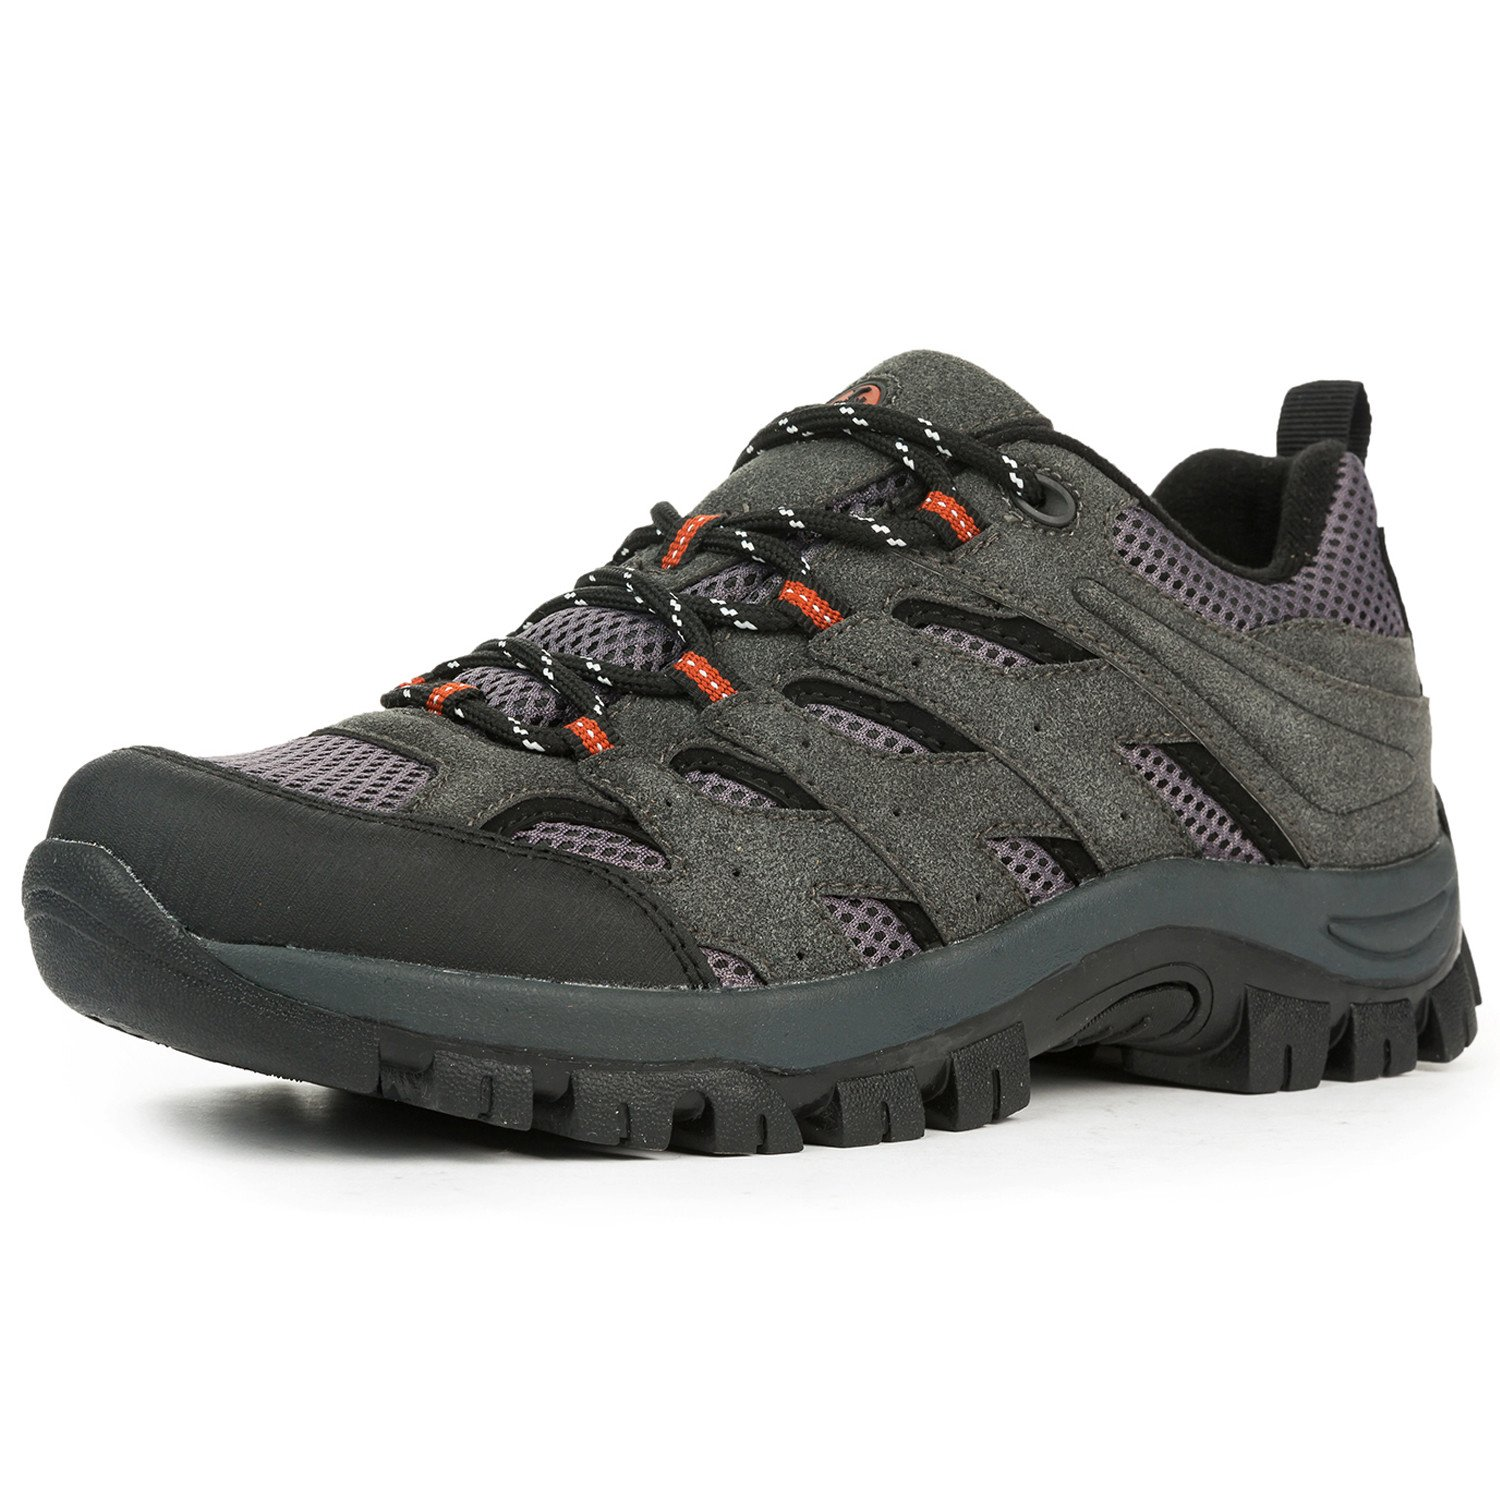 L-RUN Hiking Boots Mens Suede Outdoor Backpacking Shoes Grey 10 D(M) US